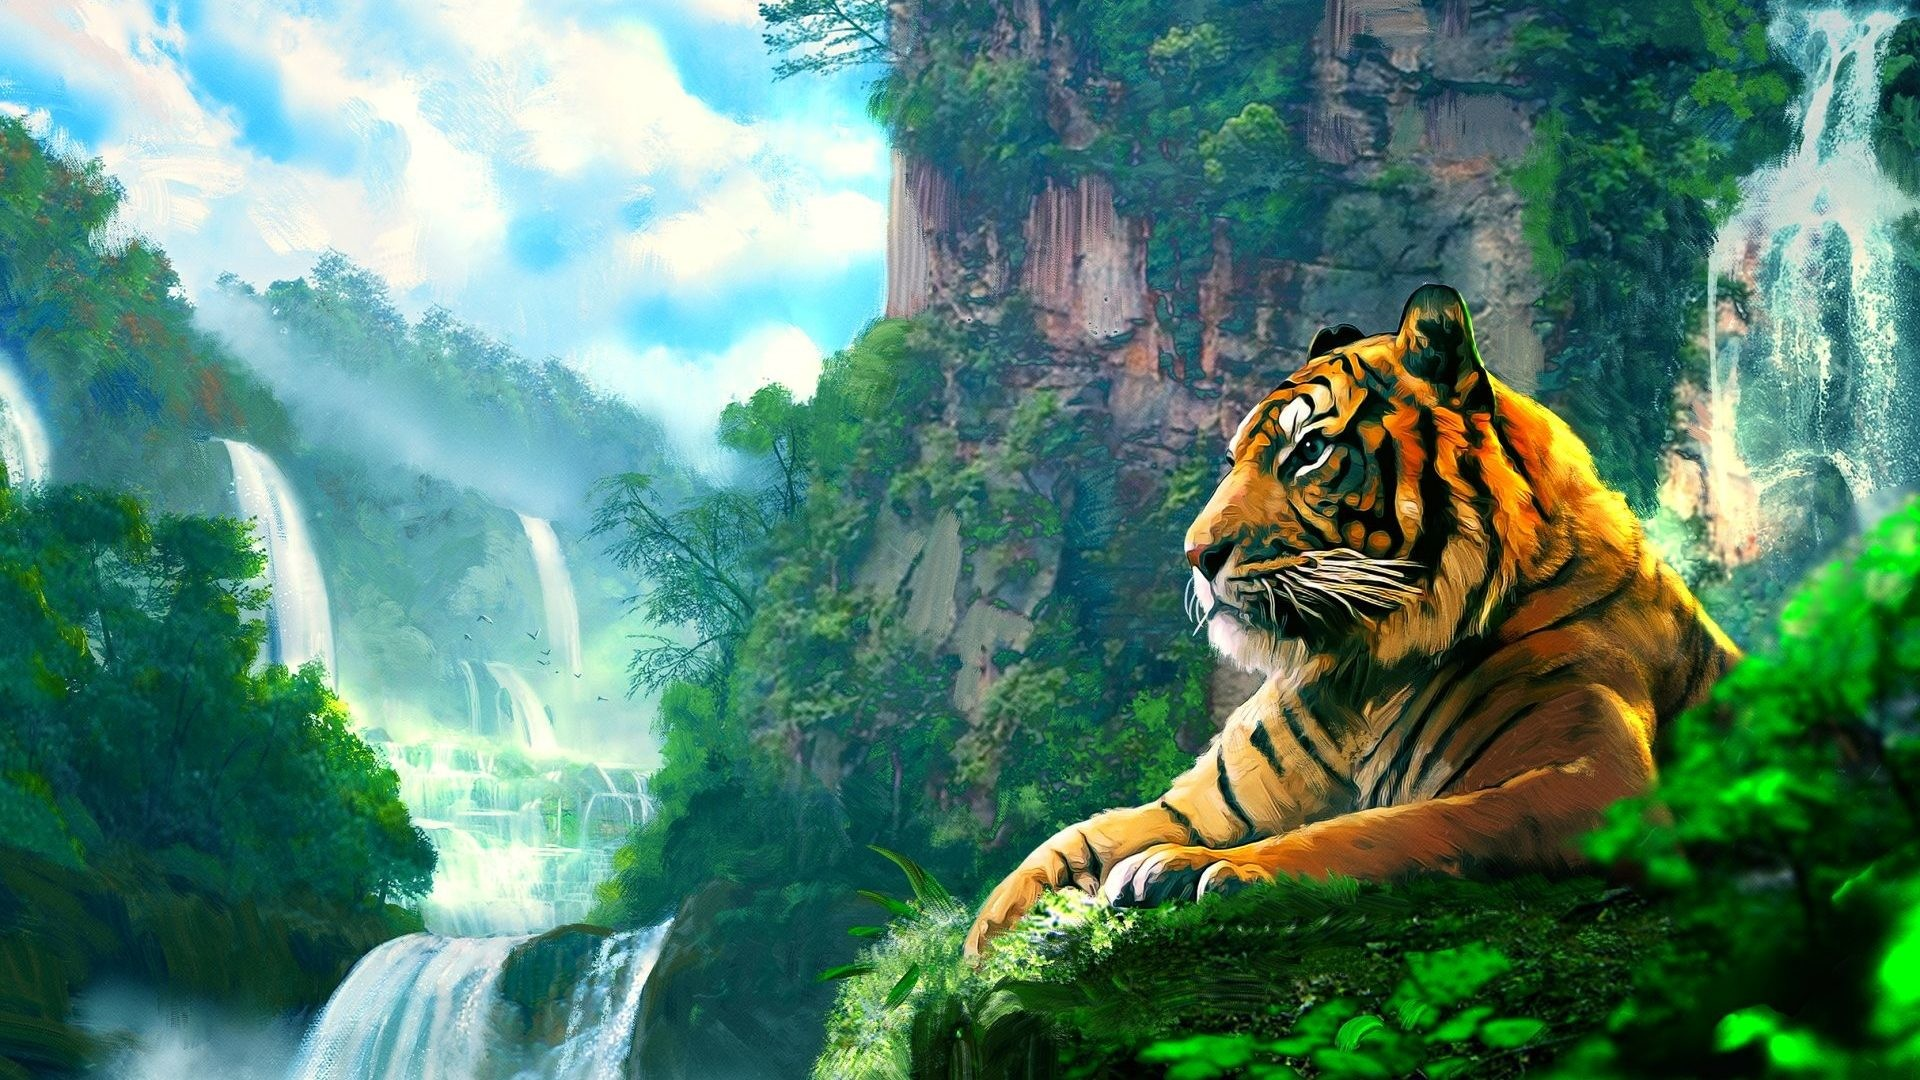 Fantasy nature wallpapers 74 images - Nature background 1920x1080 ...